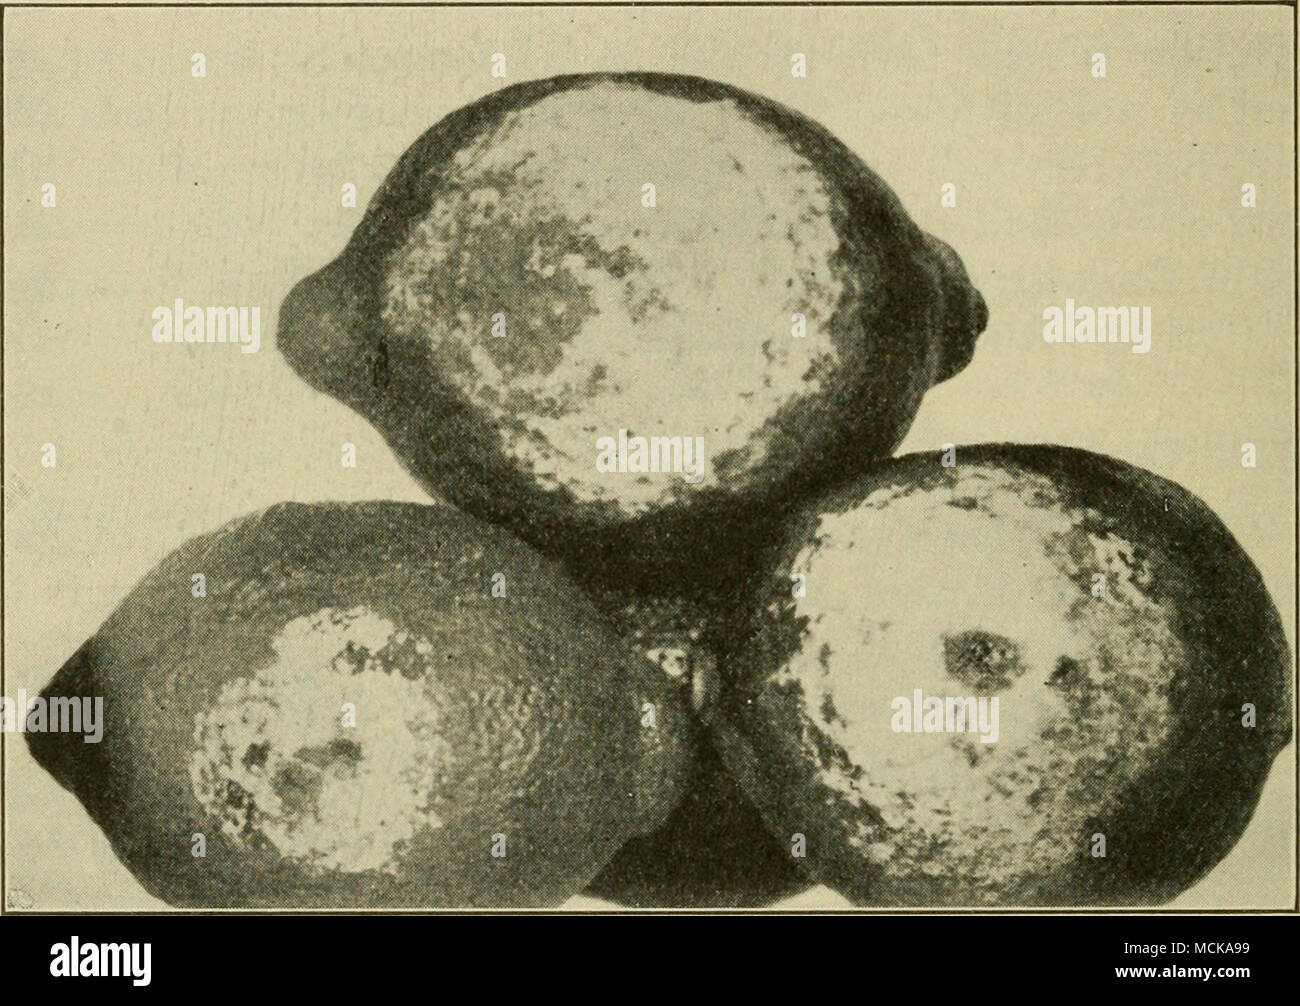 . Fig. 70. — Brown-rot of lemons, showing white growth of the fungus. After R. E. Smith. of small flies in boxes where there is diseased fruit. One affected fruit in a box communicates disease to the whole. Brown-rot is found in nearly pure condition on the fruit in the orchard, especially on fallen fruit or on fruit hanging low on the tree. It is most prevalent in wet weather or on low ground after irrigation. The fungus is visible to the eye in the packing-house, as a mass of white filaments. It is spread by contact alone. Orchard infection can be controlled by the use of a heavy mulch under - Stock Image